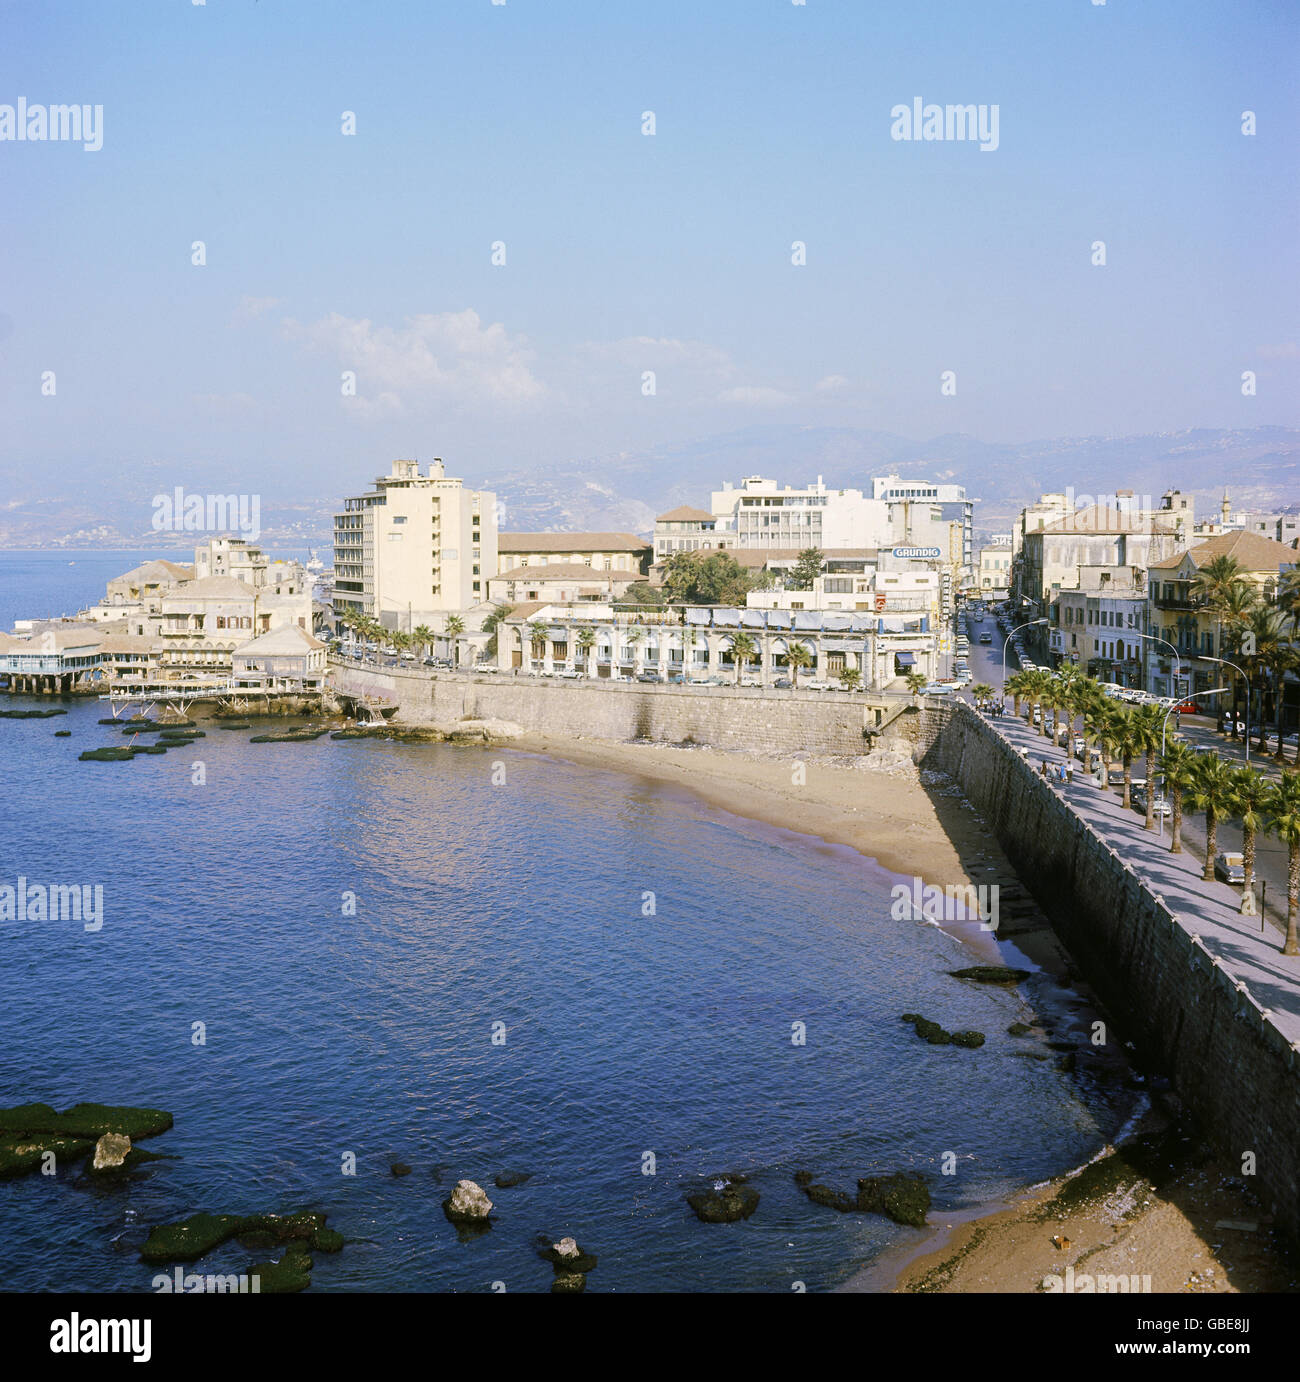 geography / travel, Lebanon, Beirut, view at harbour, 1970s, Additional-Rights-Clearences-NA - Stock Image